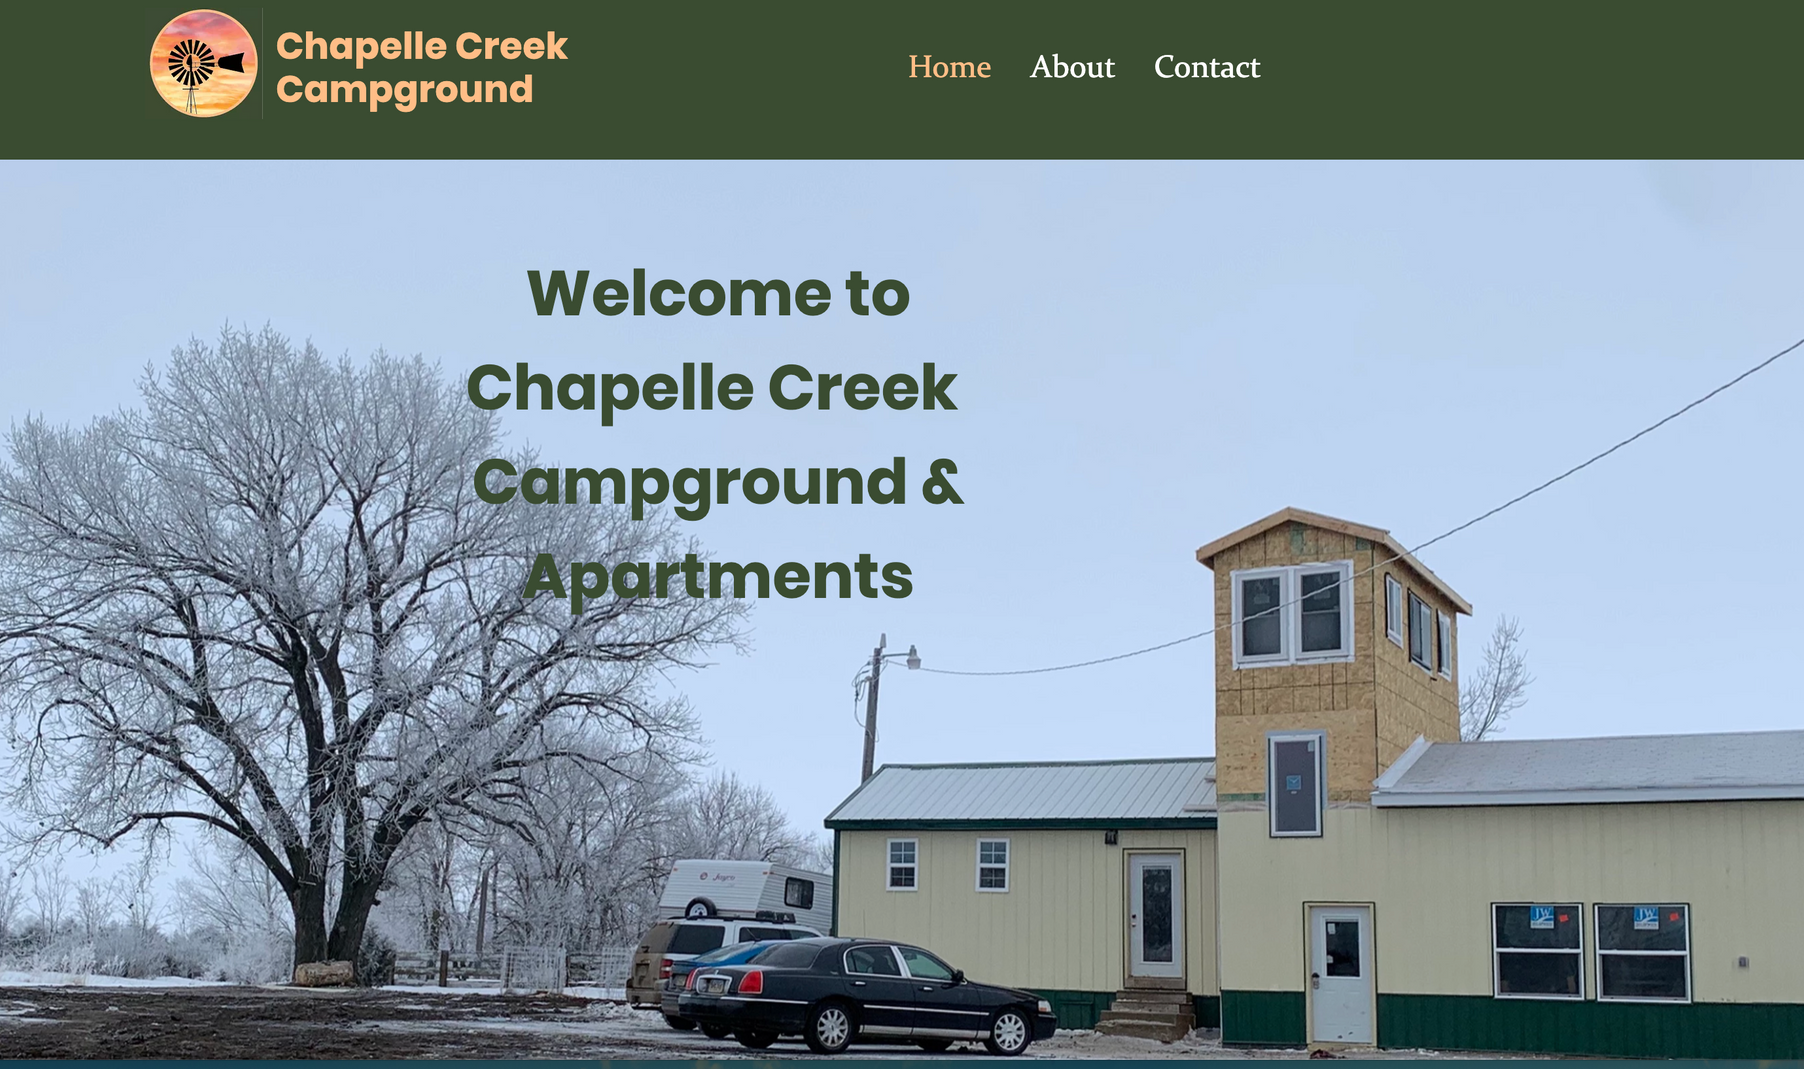 Chapelle Creek Campground Website